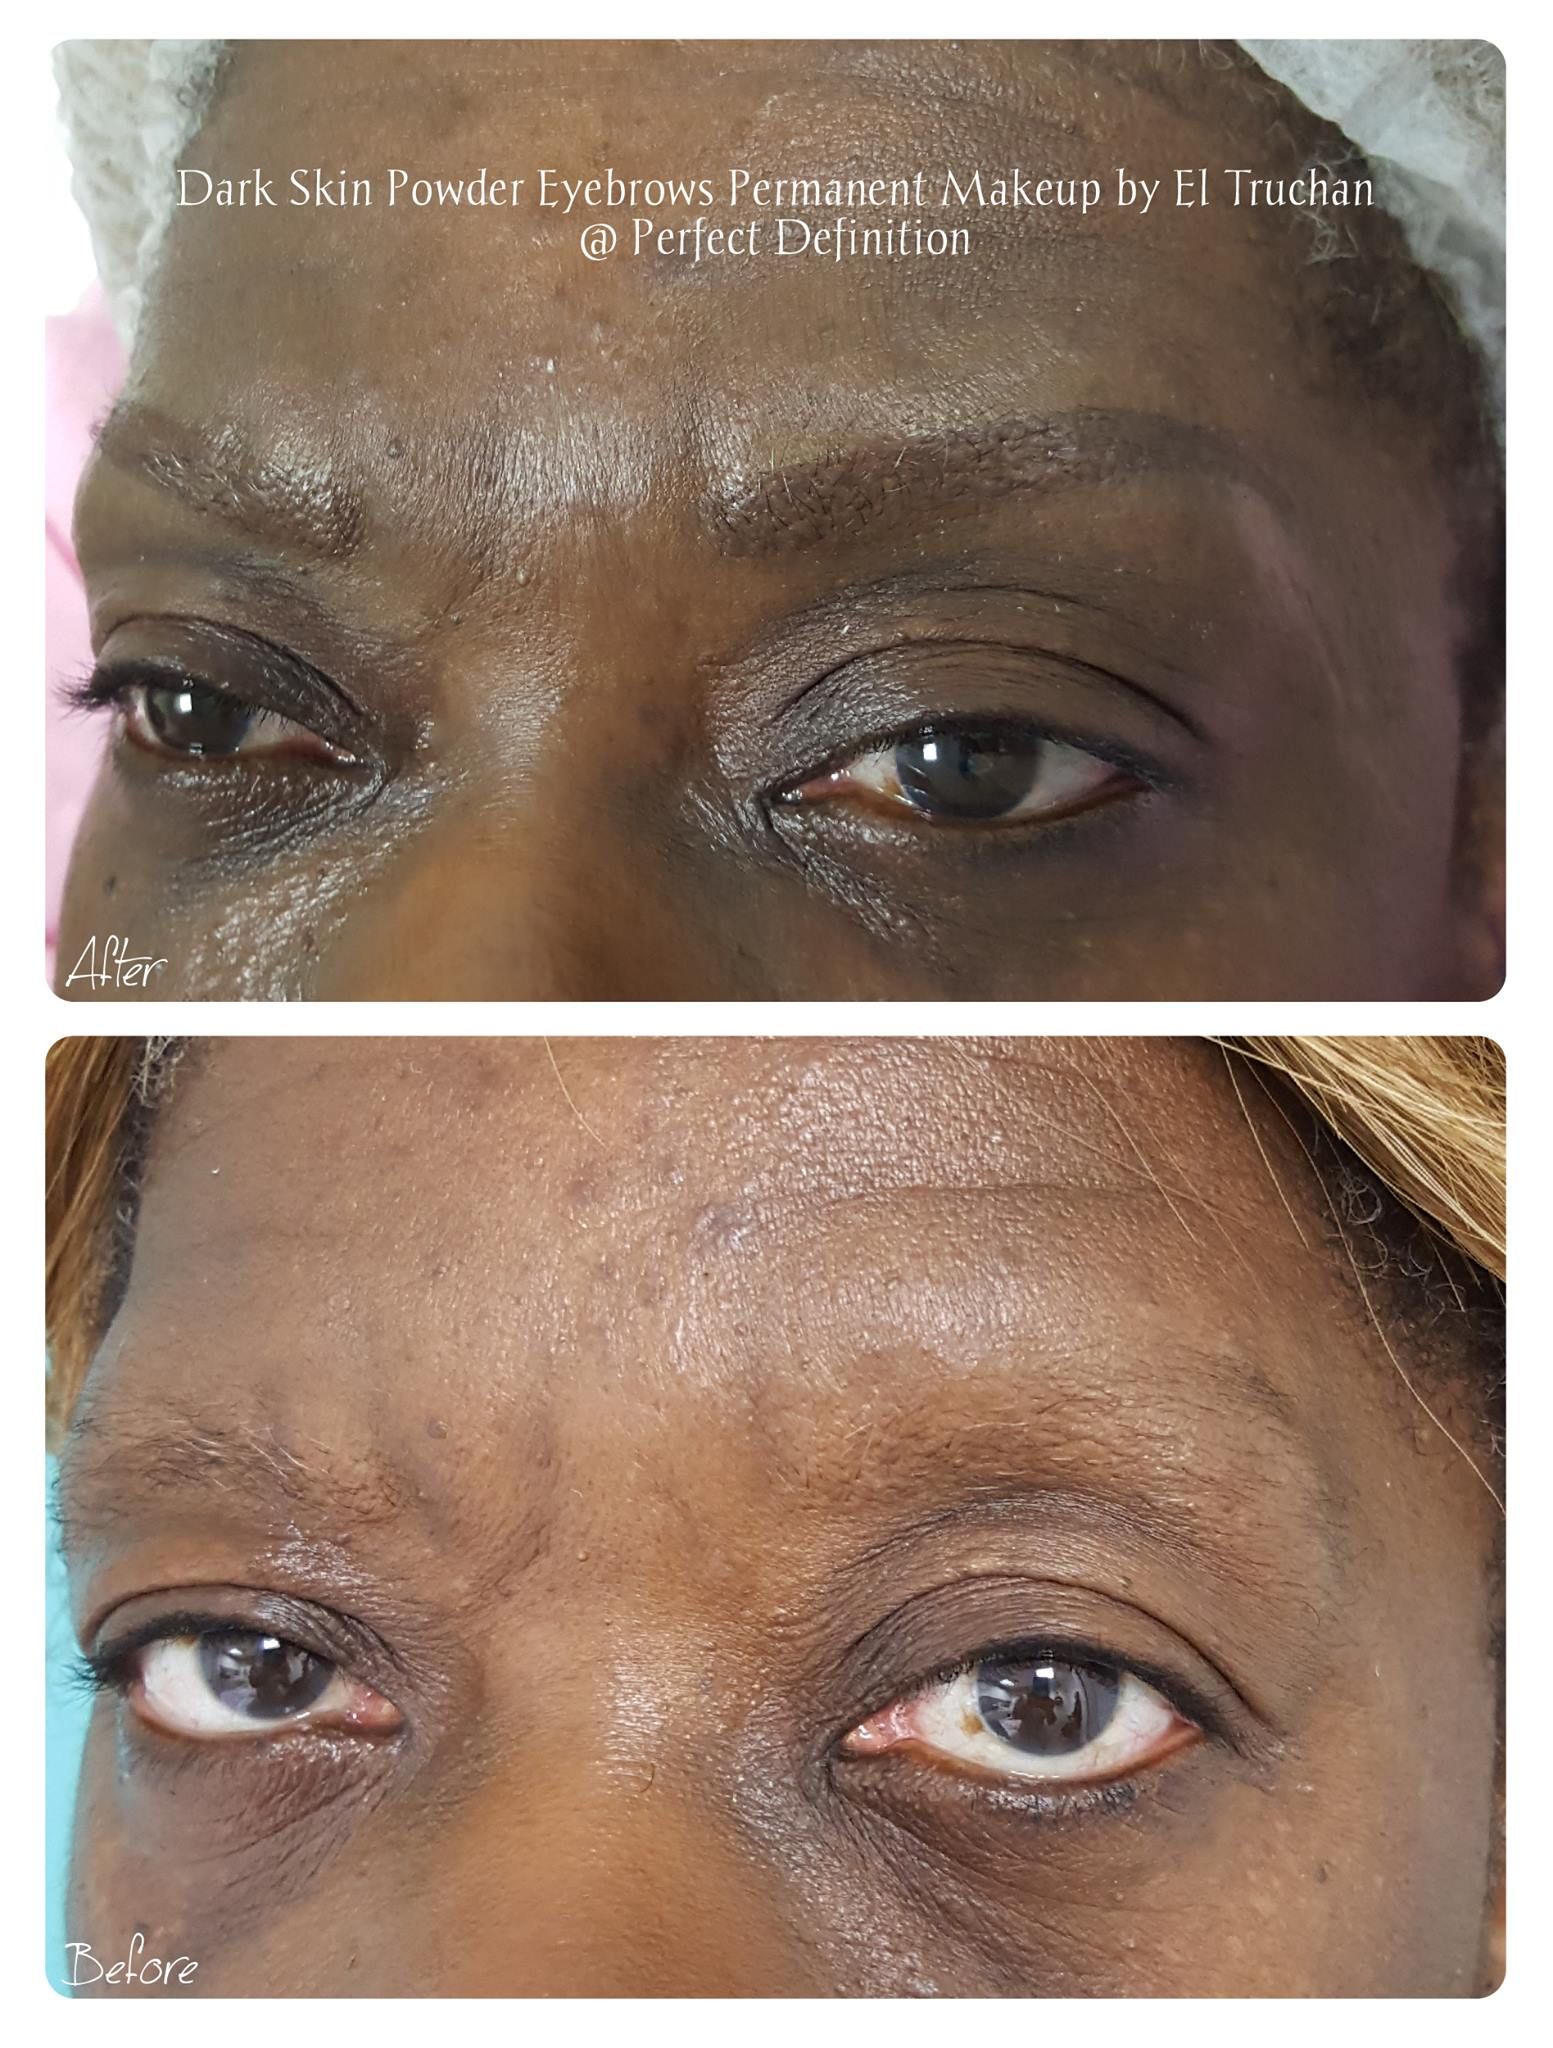 Dark Skin Powder Eyebrows